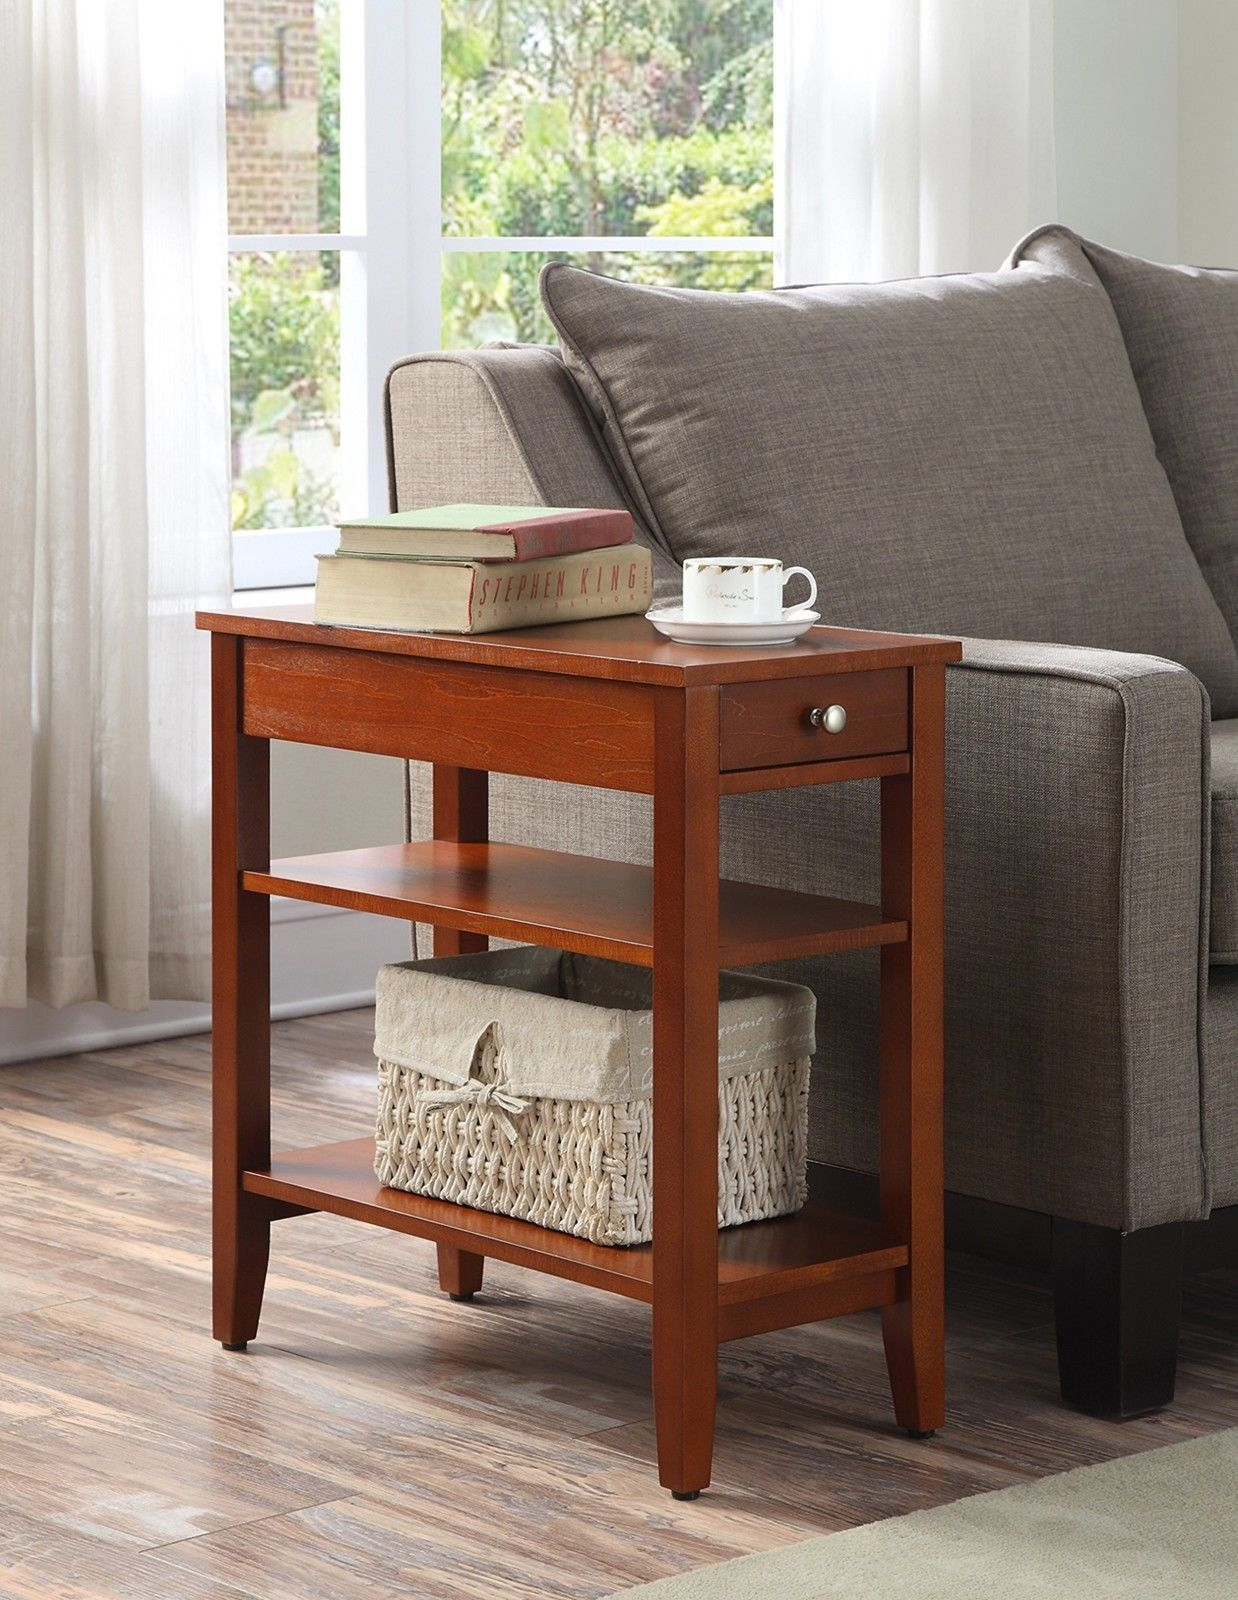 Small End Table Wooden Drawer Chair Side Narrow Home Living Room Furniture  New